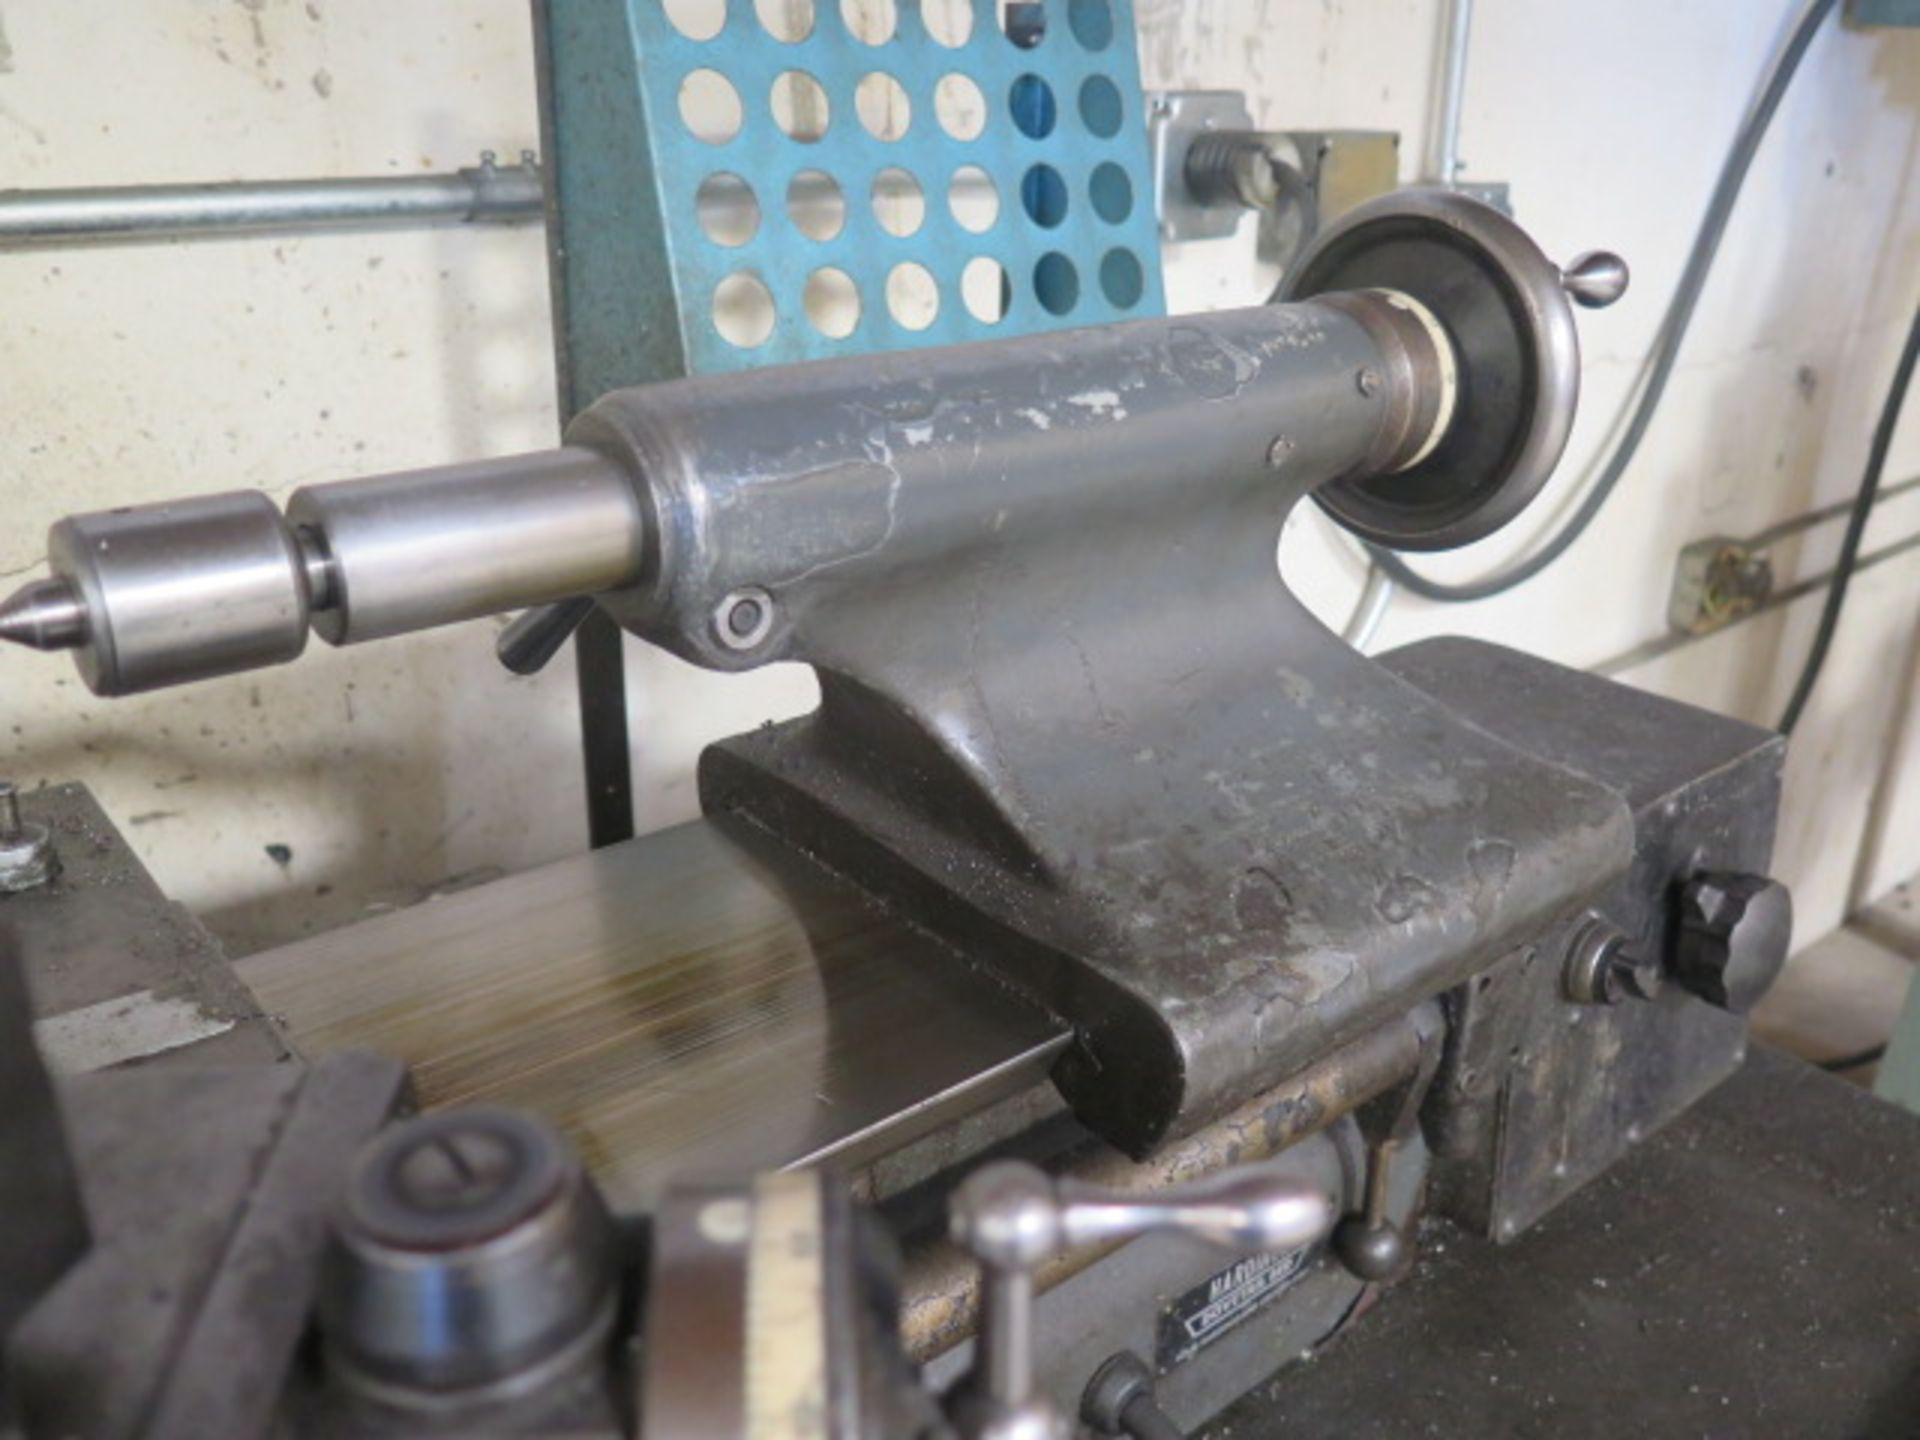 Hardinge TFB-H Wide Bed Lathe w/ 125-3000 RPM, Tailstock, Power Feed, 5C Collet Closer, Coolant ( - Image 7 of 10